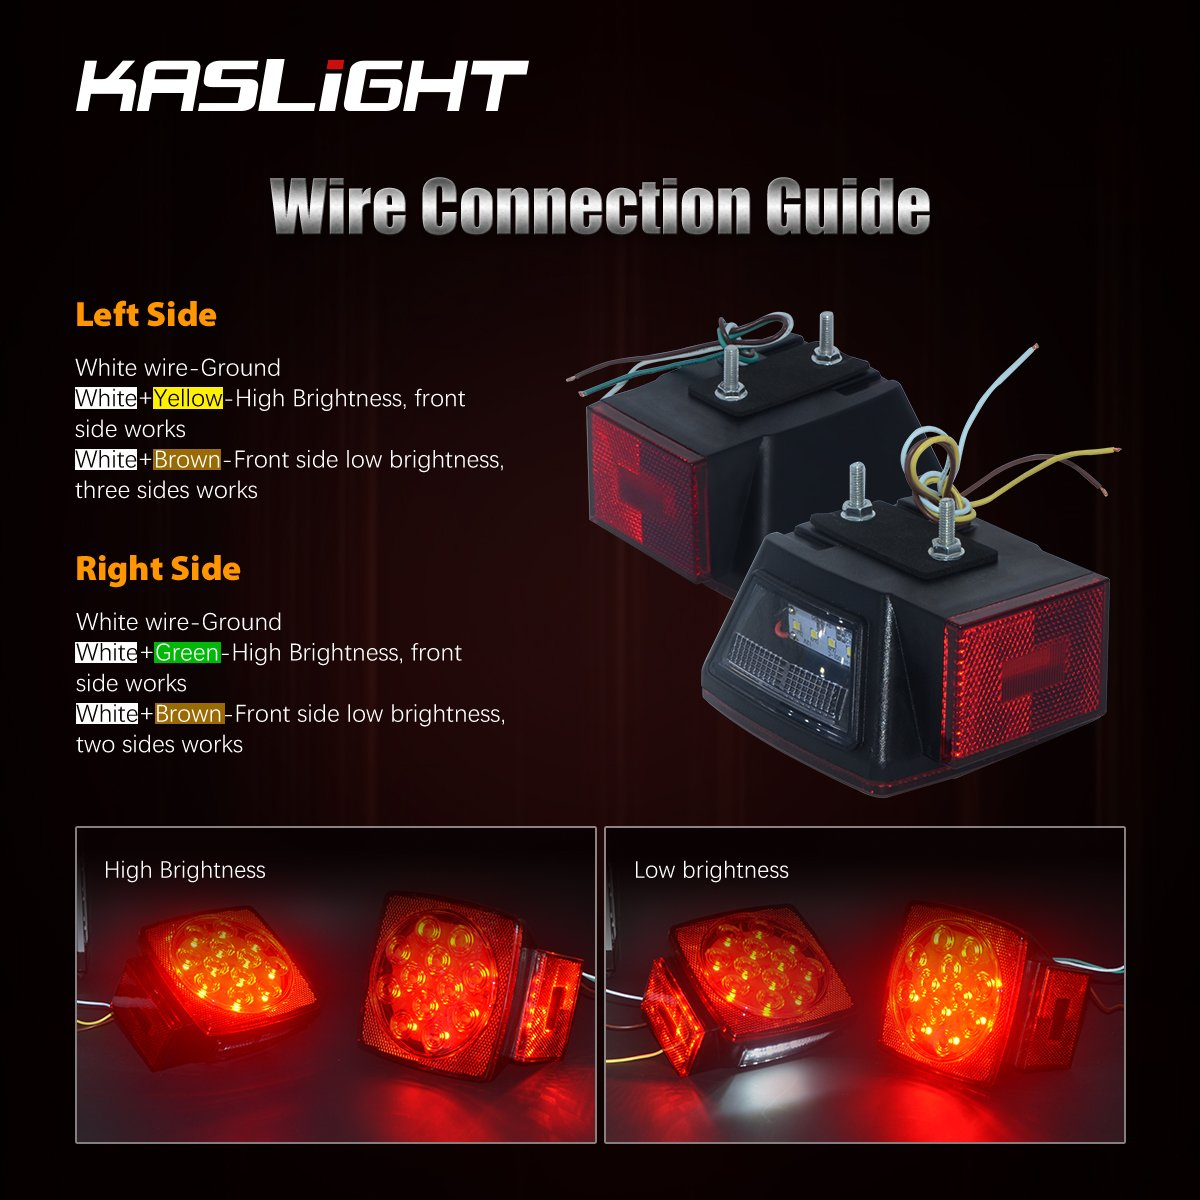 Kaslight Ip68 12v Boat Trailer Light Kit Led Submersible Diagram Also Wiring Color Code On H4 Headlight Lights And Utility Tail Stop